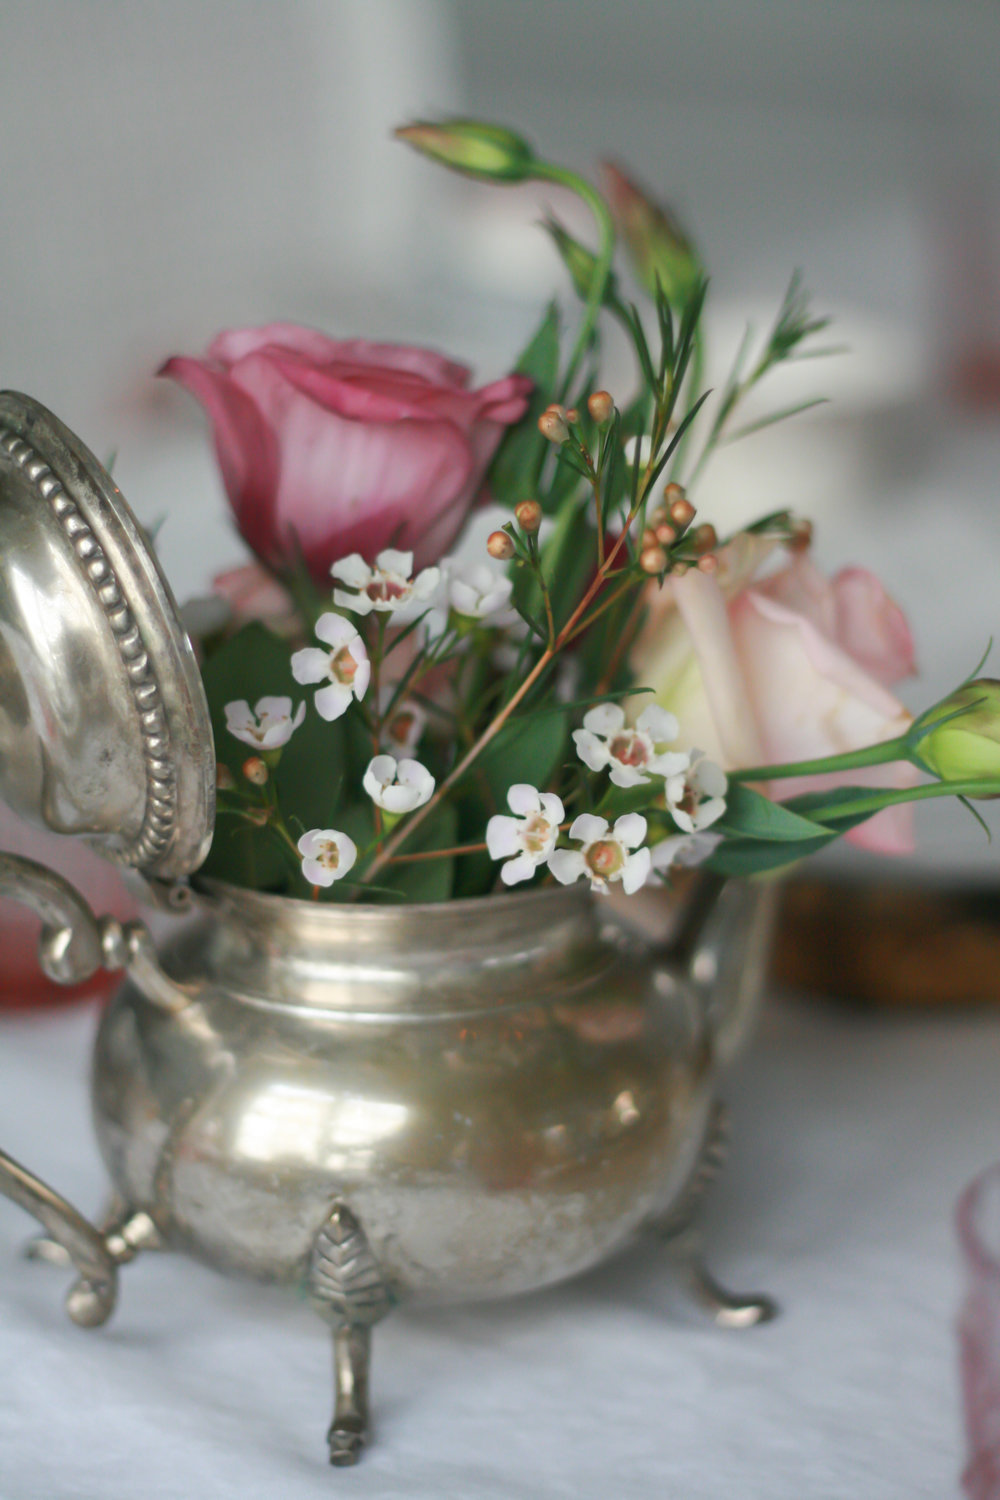 I ordered some old silver teapots from Etsy and filled them with fresh flowers.